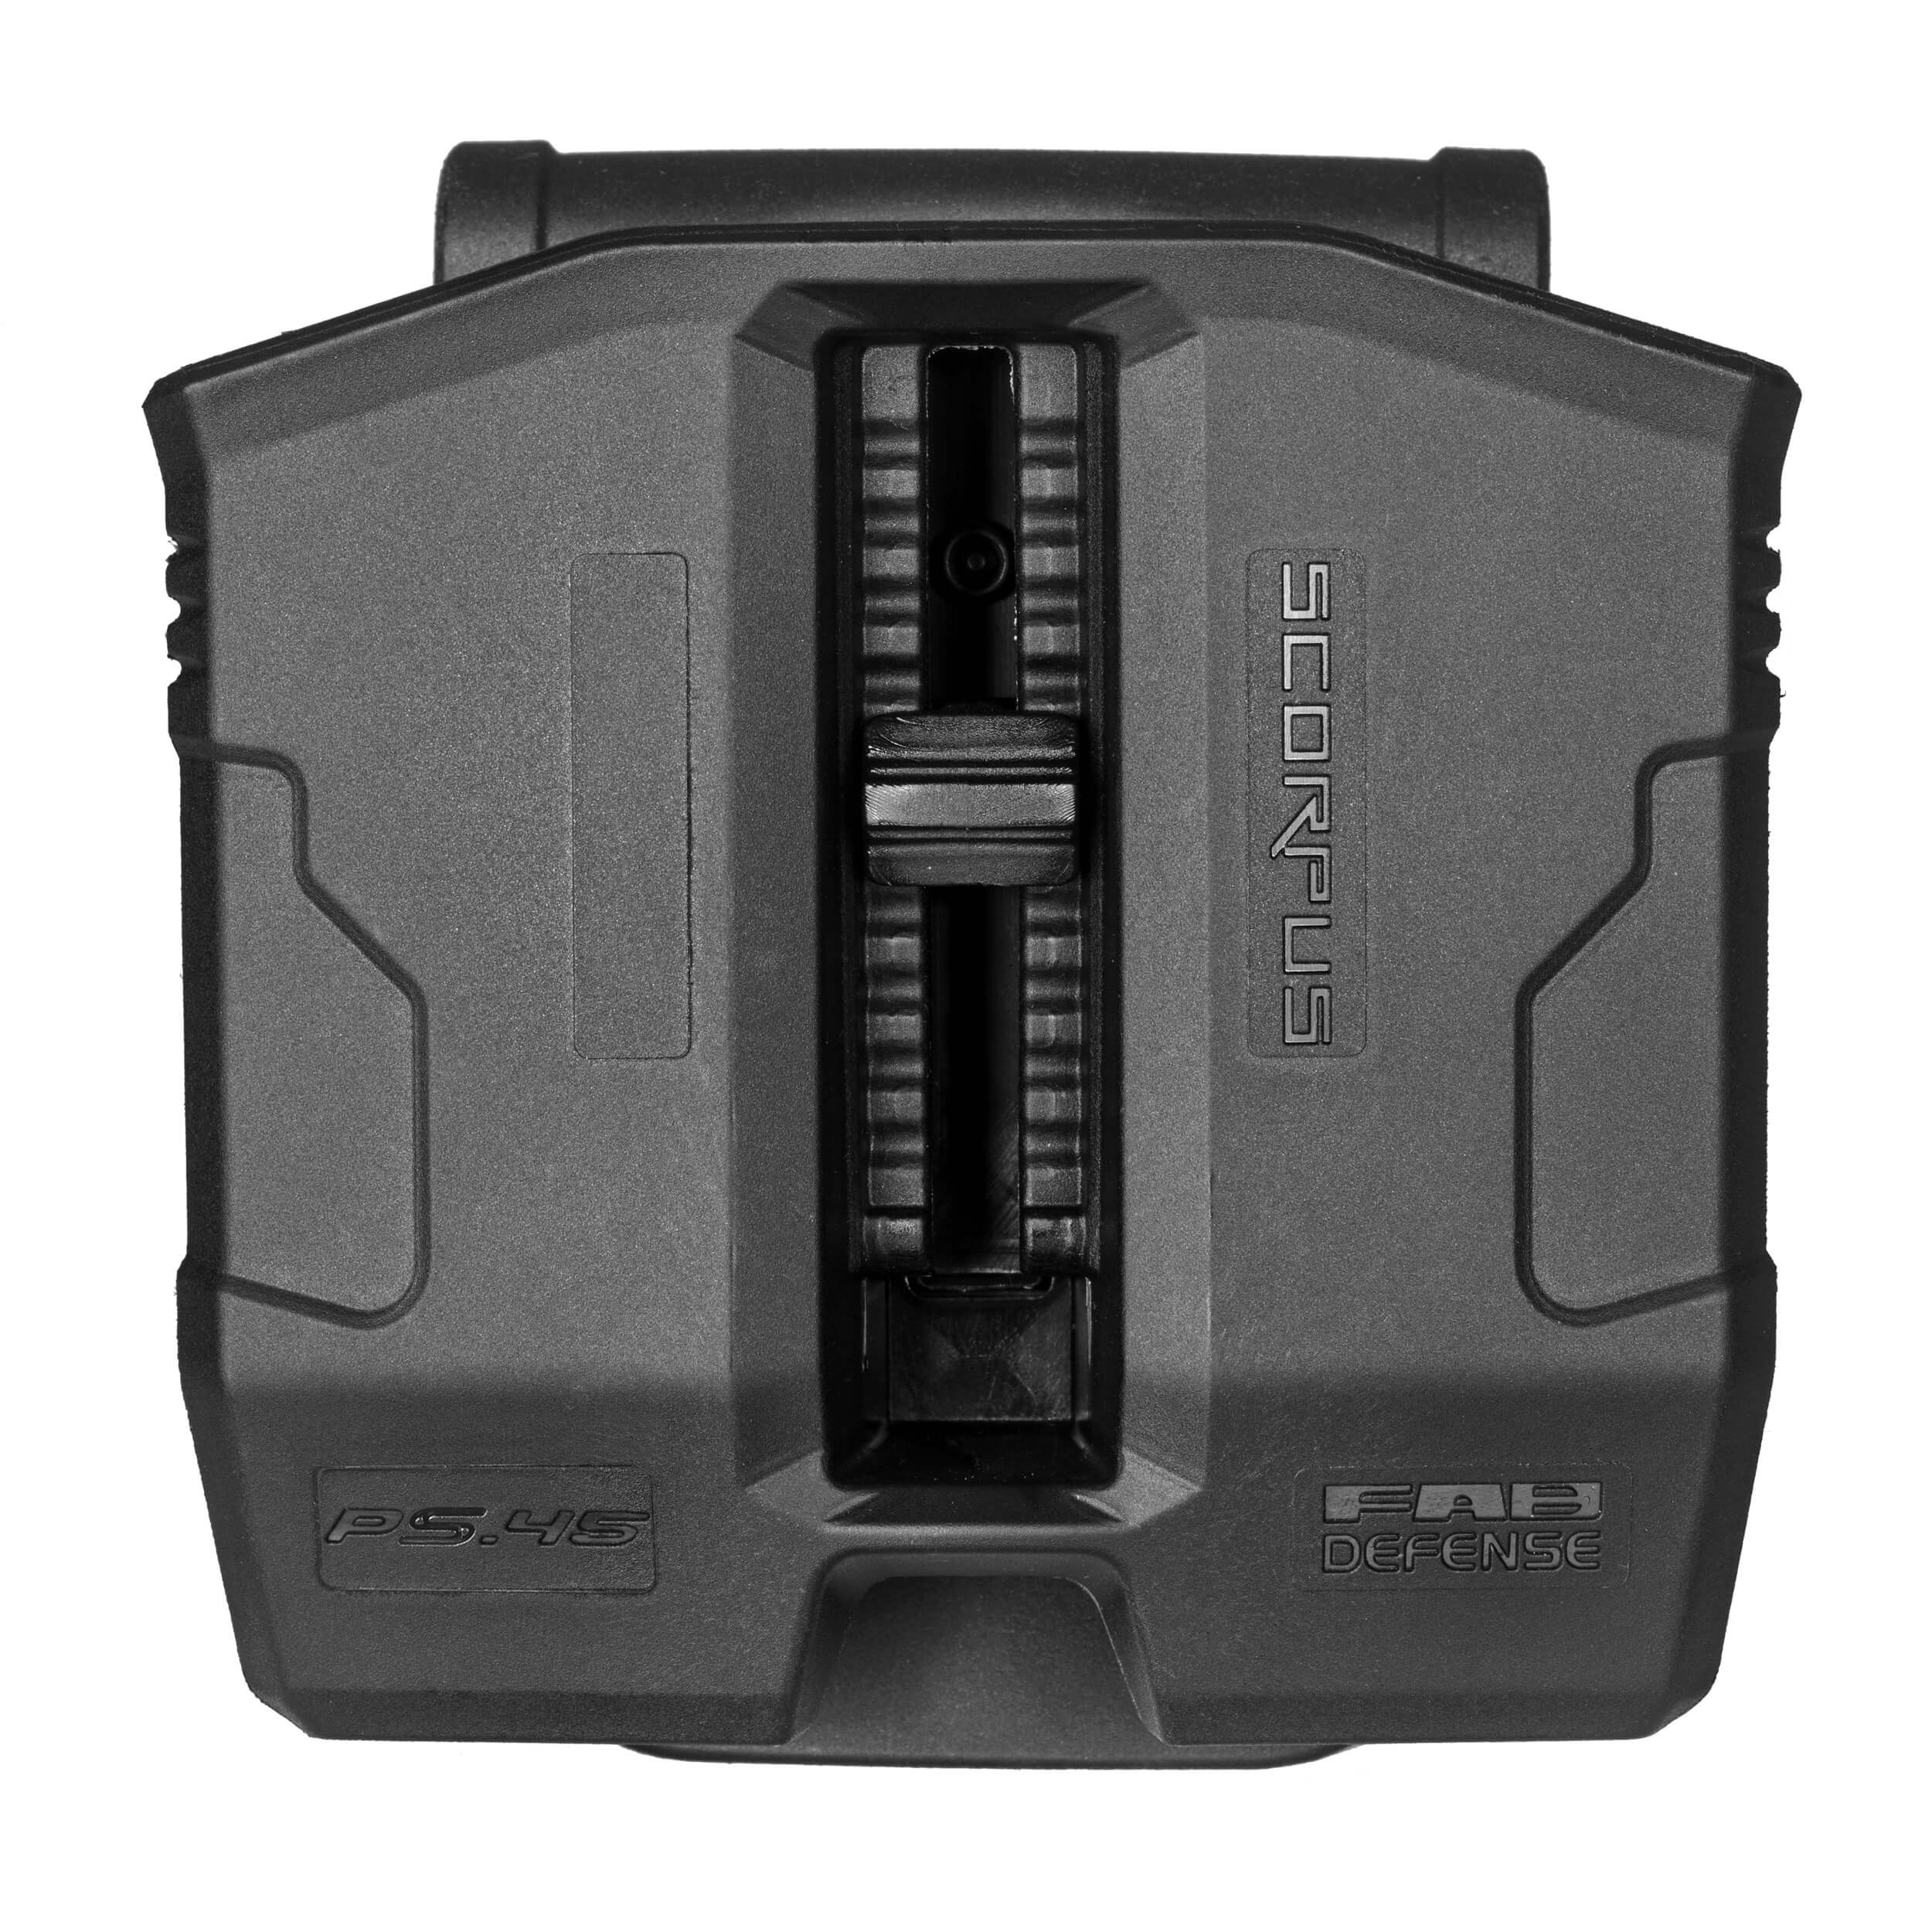 Double Magazine Pouch for .45/10mm Double-Stack Steel Magazines w/ Swivel